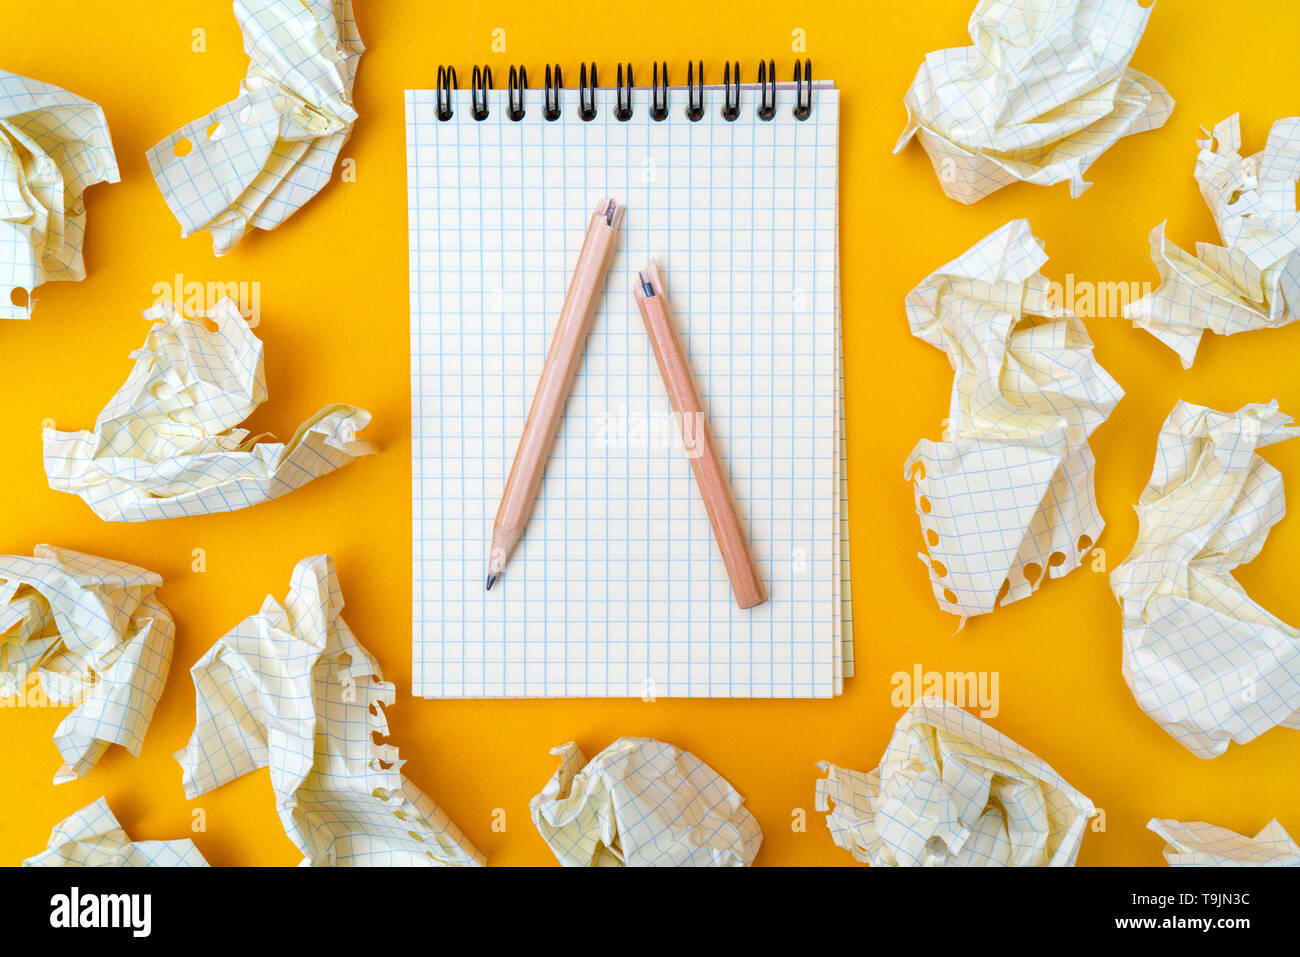 Pencil and notebook on a yellow background. Crumpled sheets of paper. - Stock Image